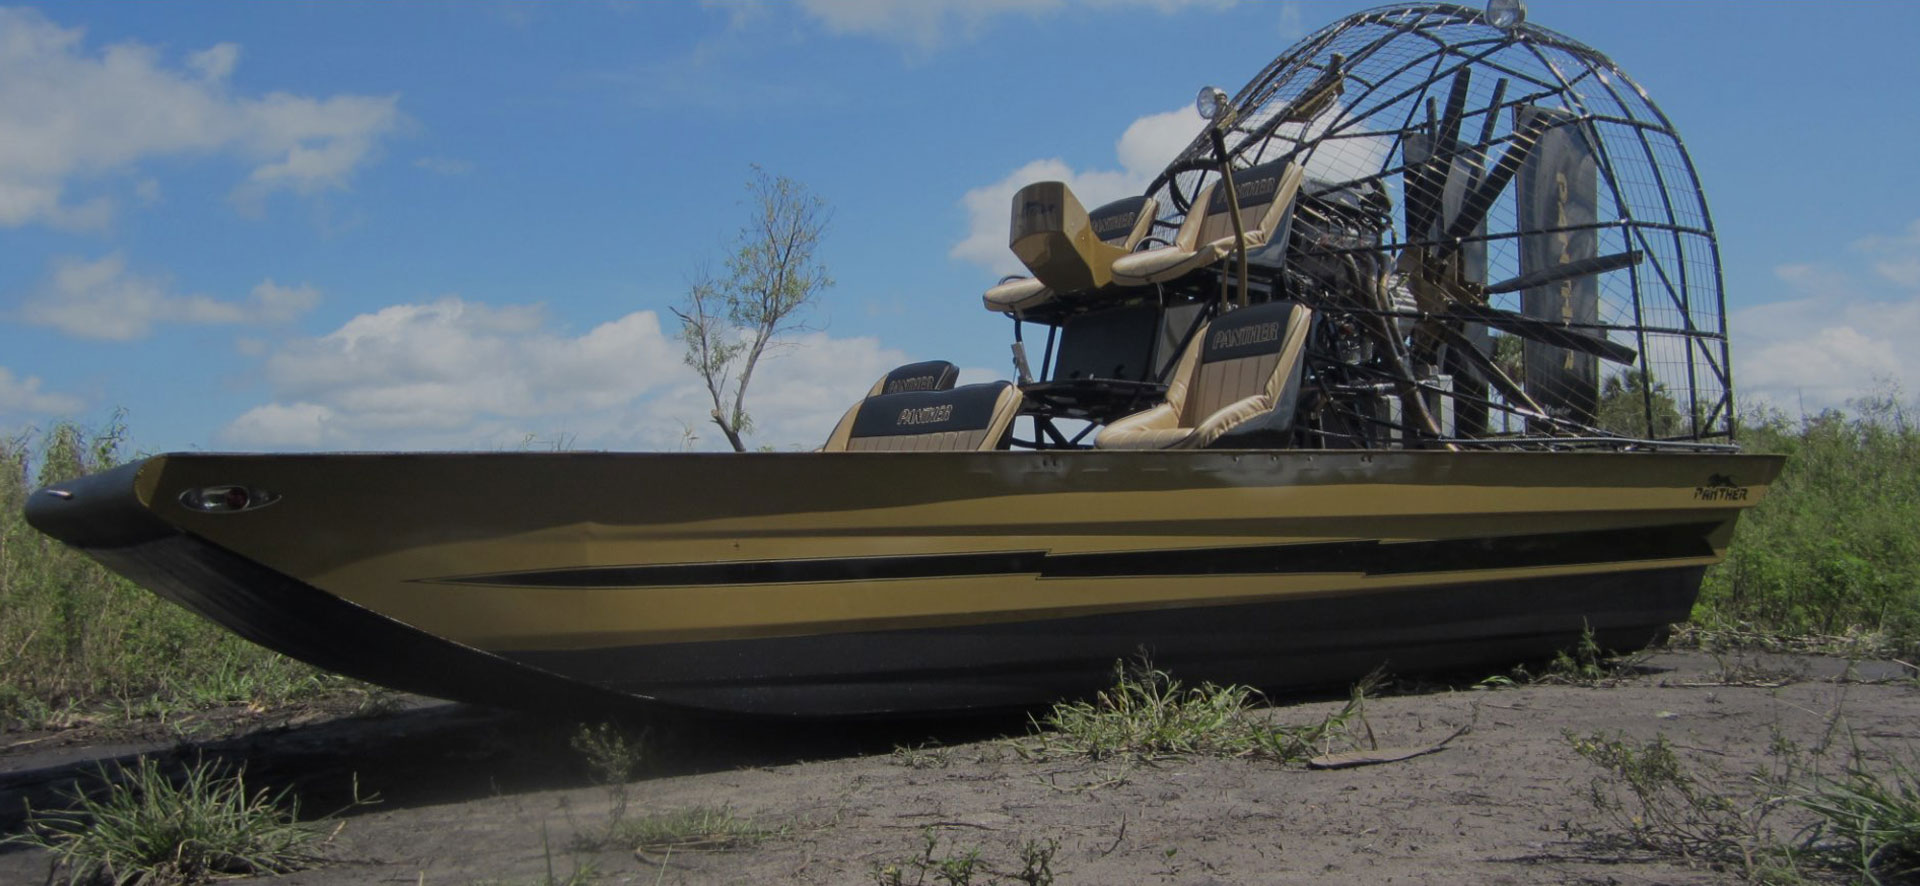 Boating | Airboats | Custom Boats | Custom Built Boats | FL